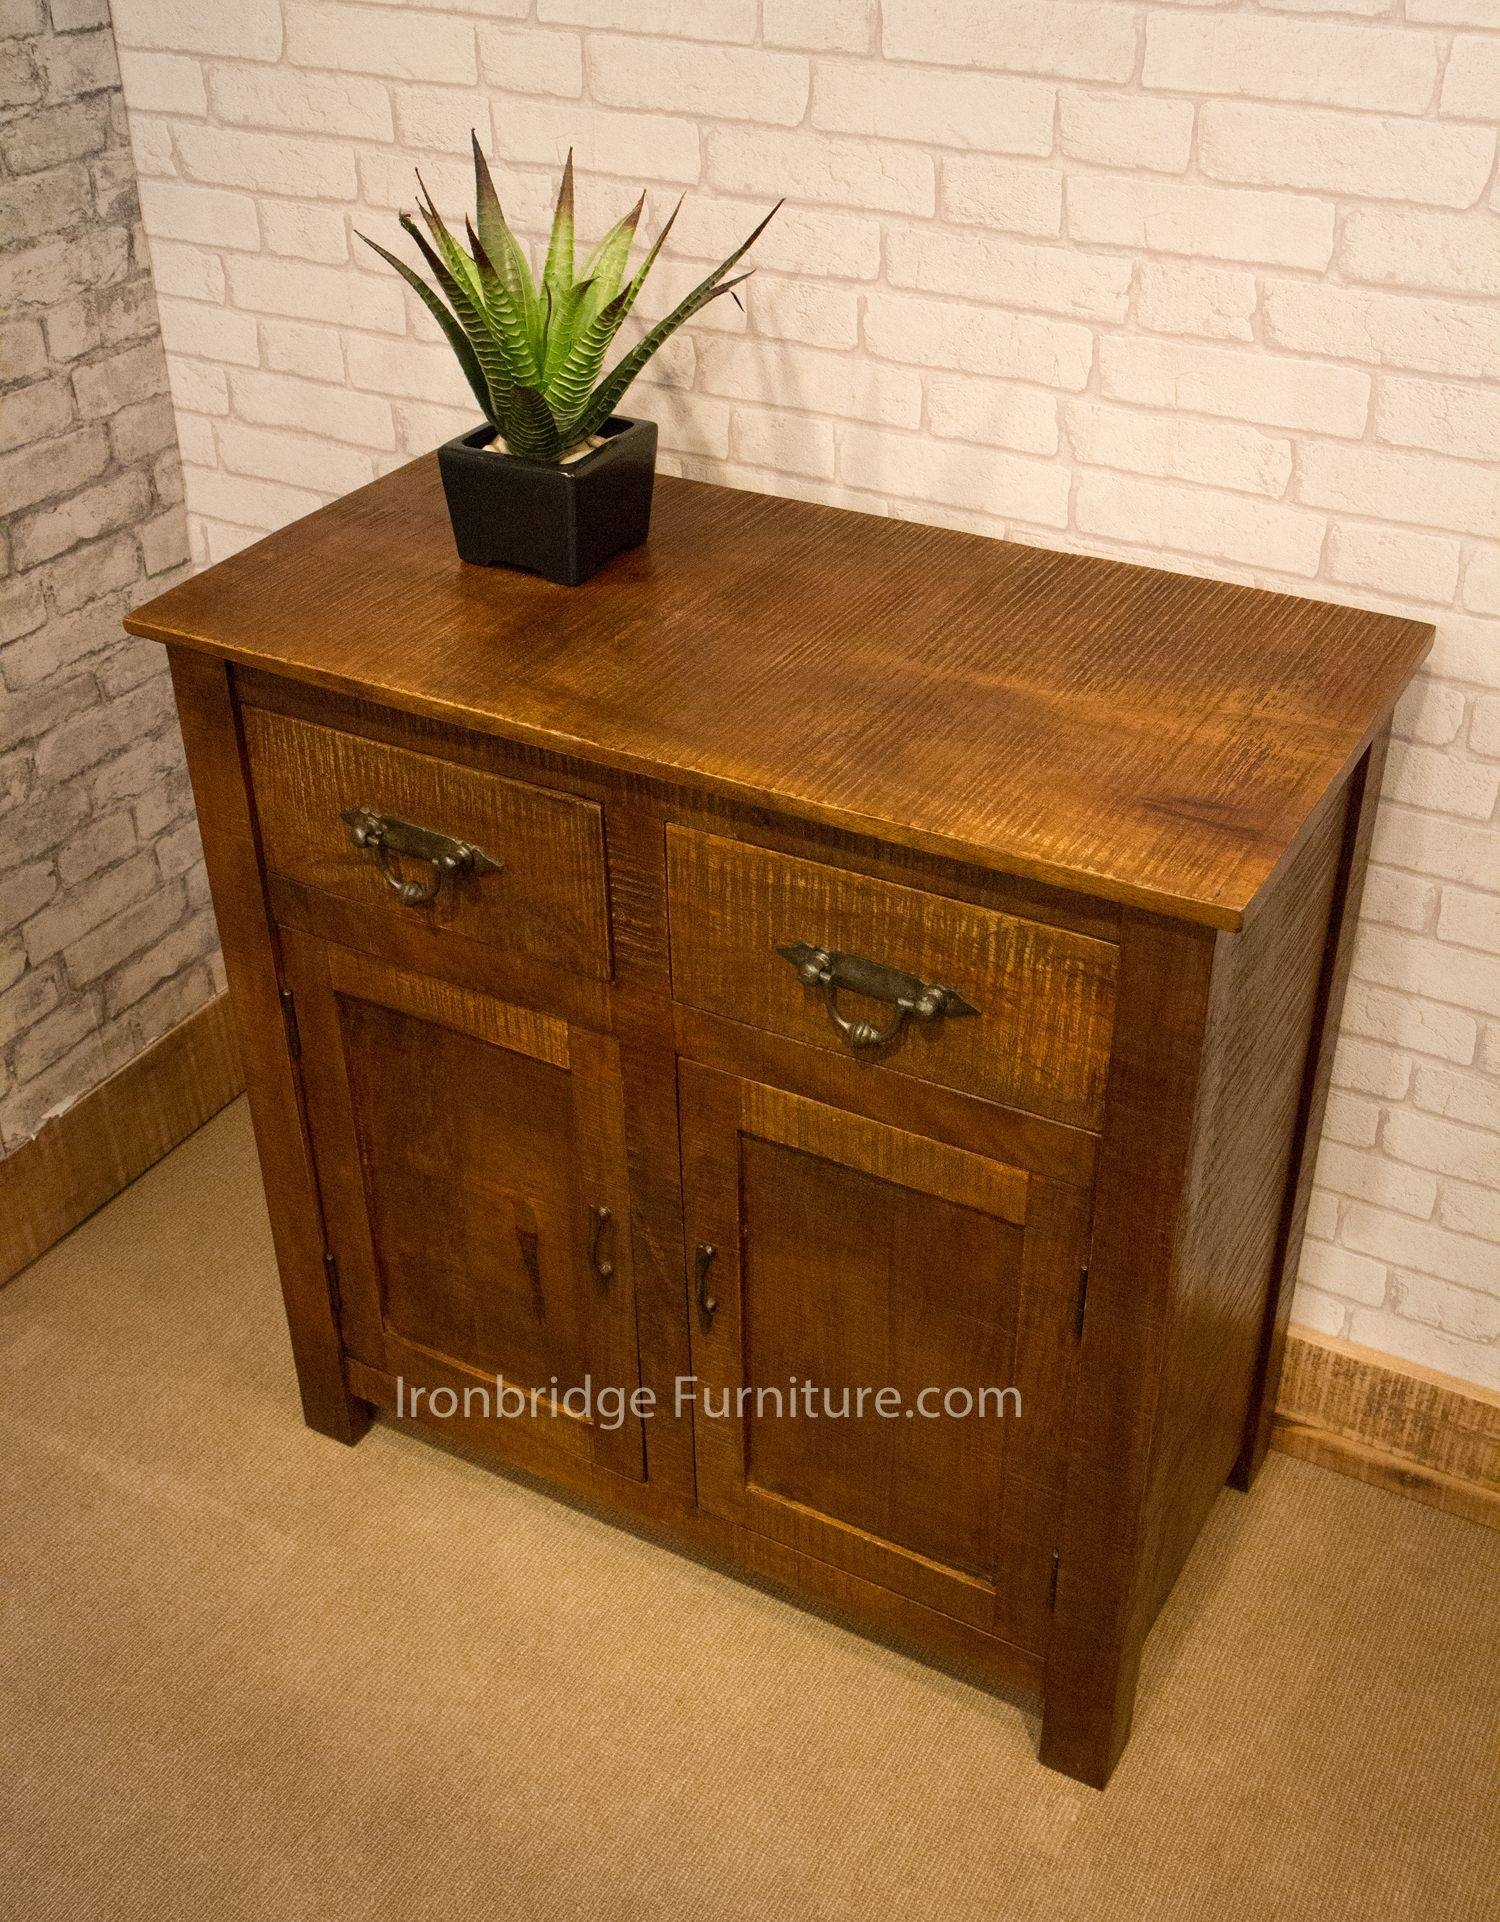 Rf-Ssba Rustic Farm Short Sideboard Extra Dark Finish - Last One for Rustic Sideboard Furniture (Image 10 of 15)